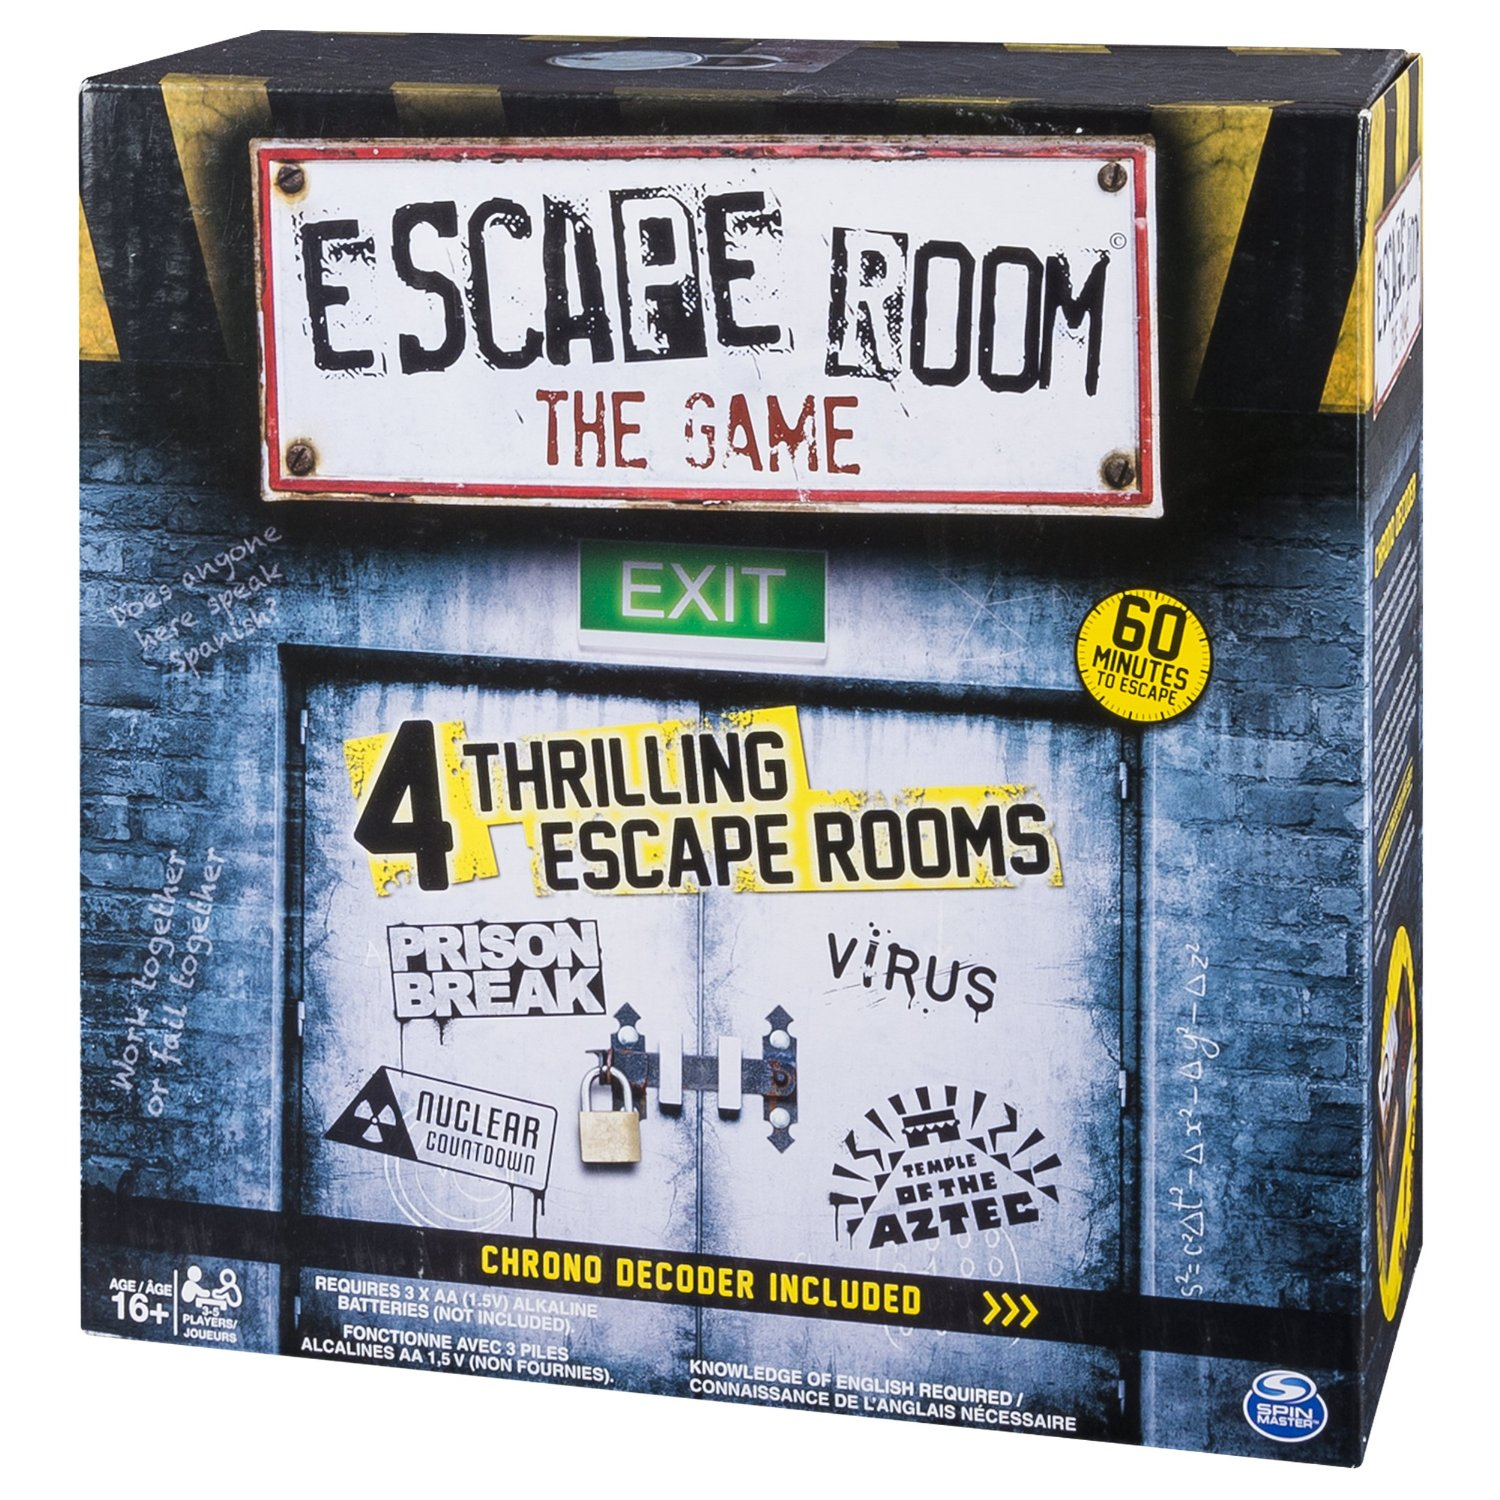 Escape room the game across the board caf for The room escape game